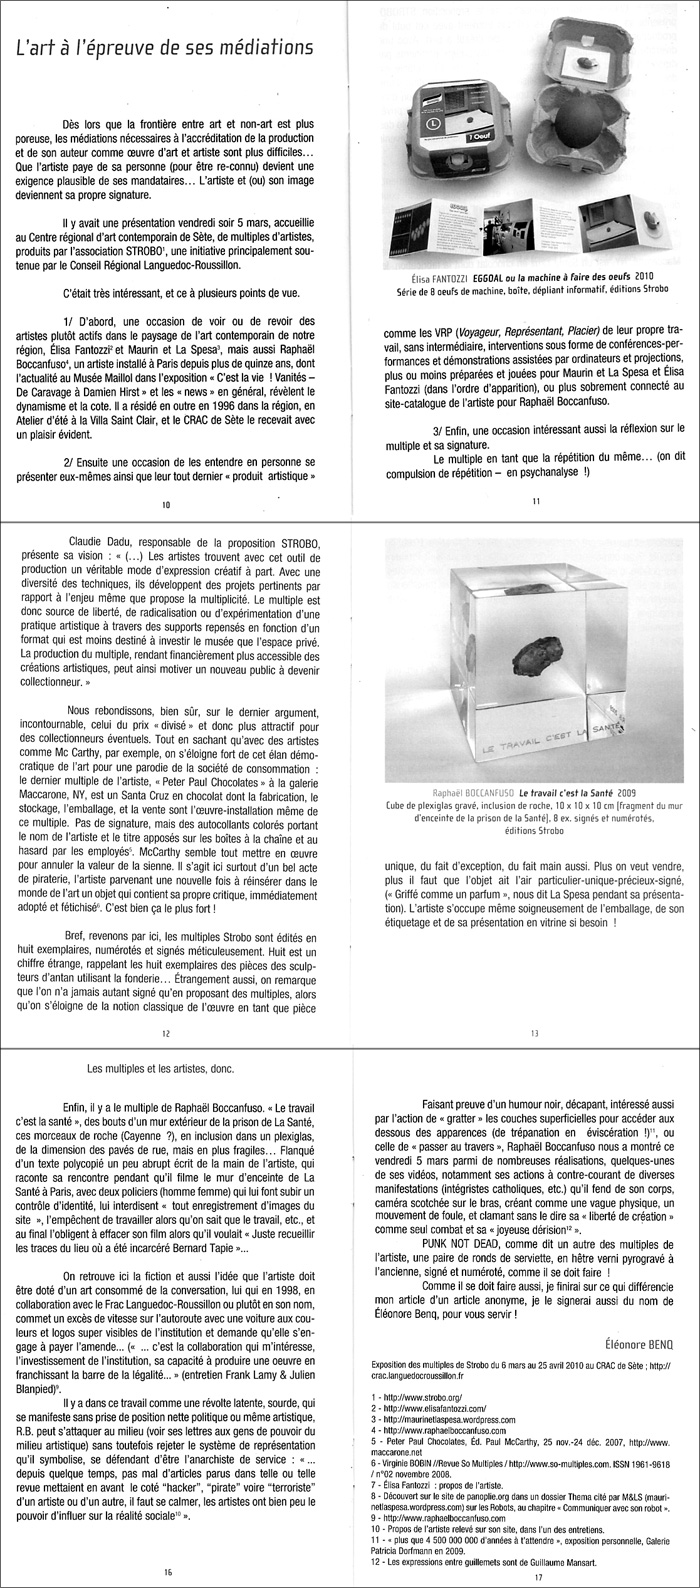 text-press-papierslibres.jpg